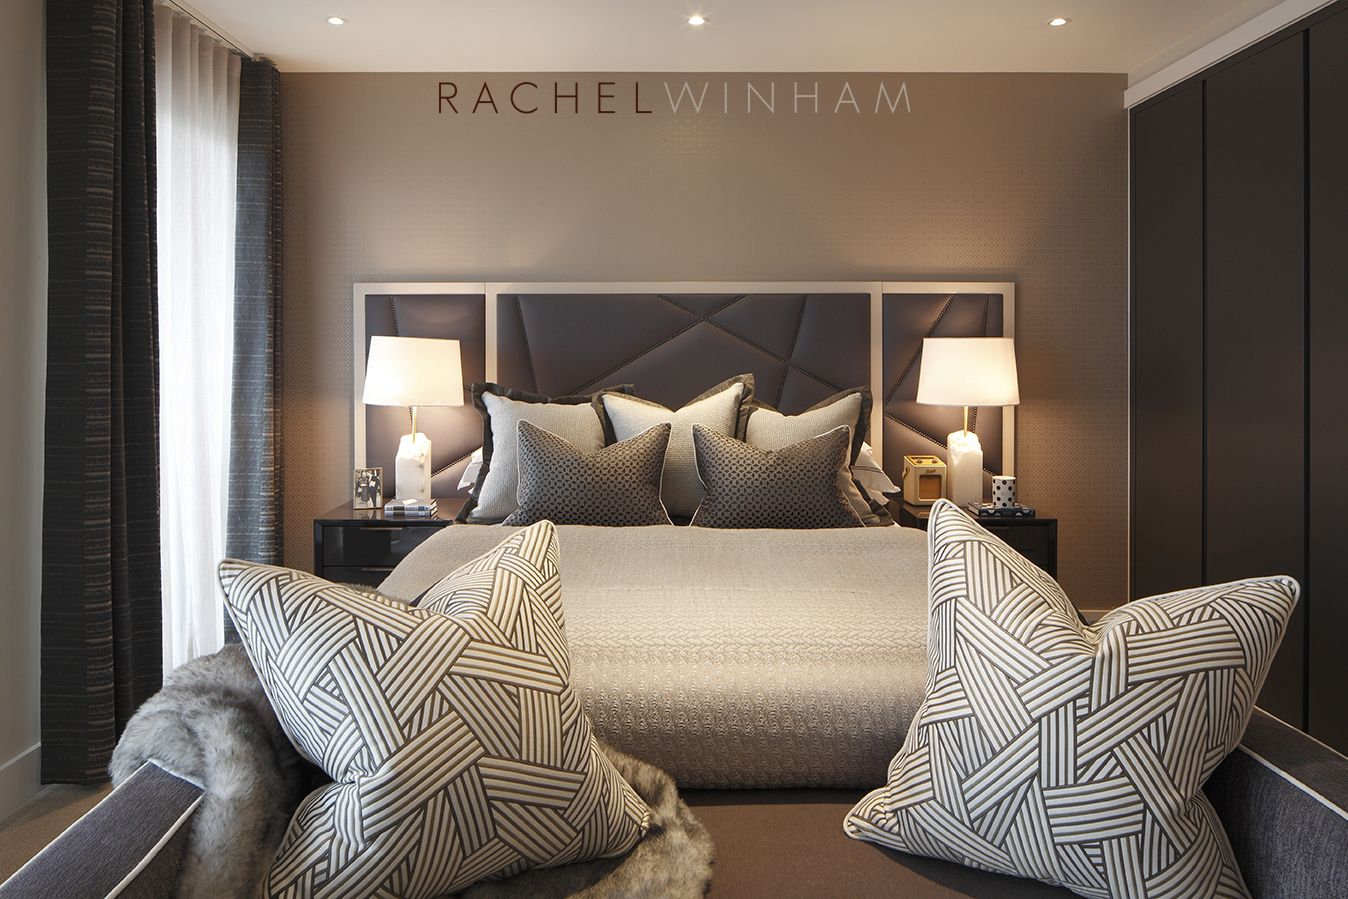 Master bedroom headboard design ideas  Pin by Leah Mougoyannis on Home  Pinterest  Bedrooms Interiors